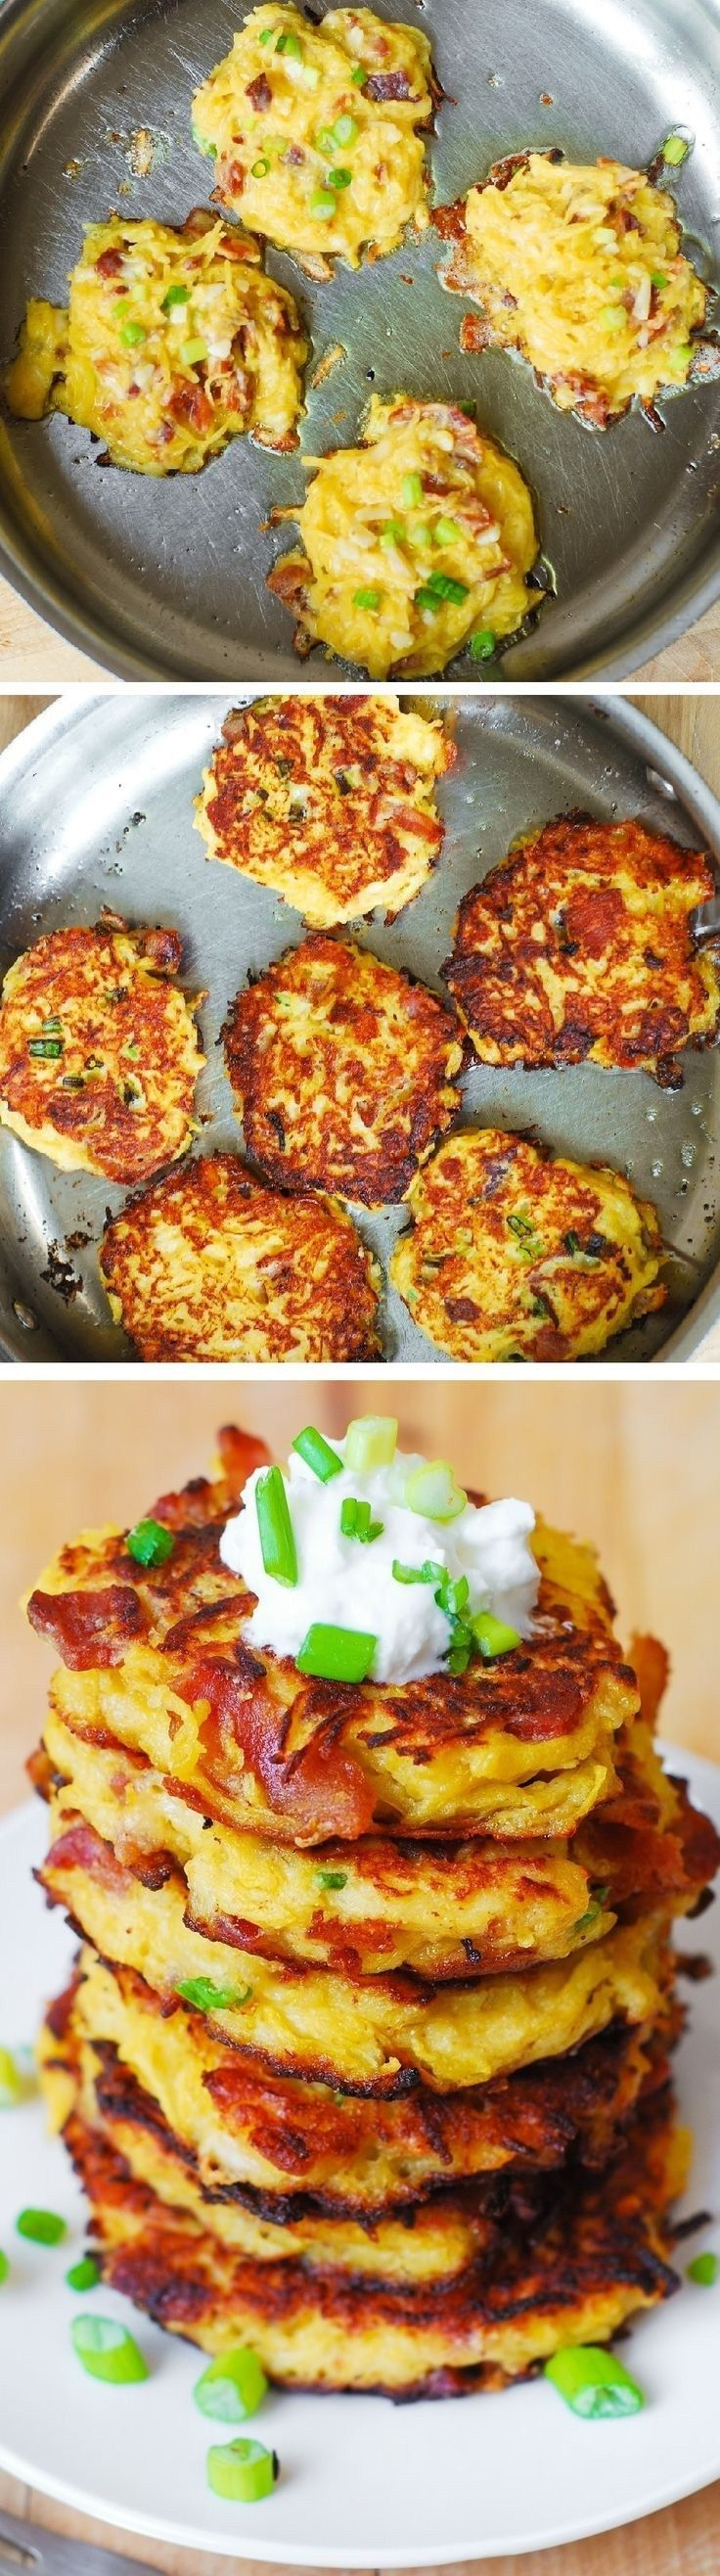 Gluten Free Bacon, Spaghetti Squash, and Parmesan Fritters #healthy #delicious #glutenfree